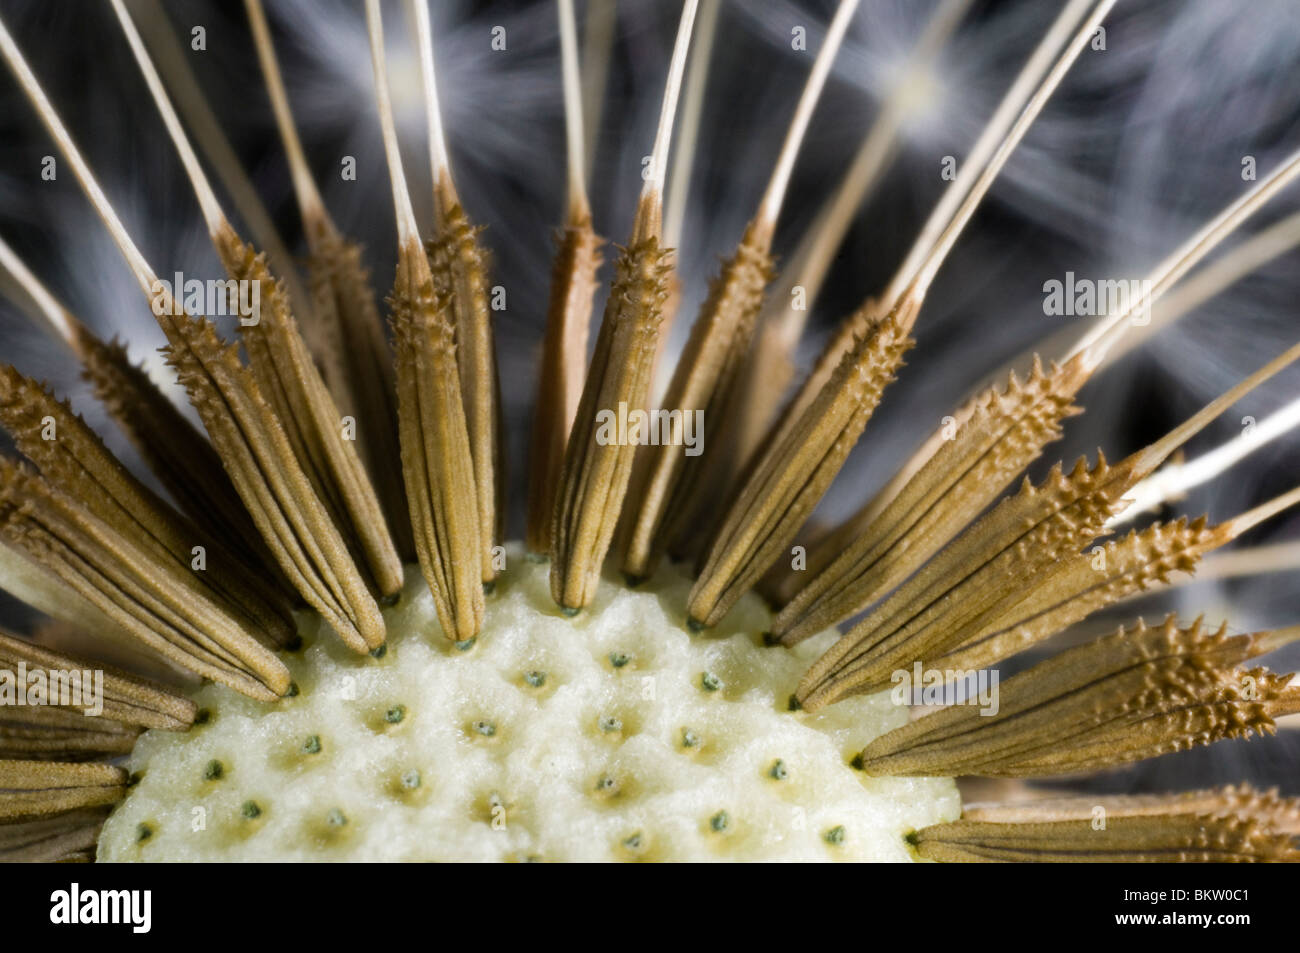 Dandelion clock, close up, showing how the seeds connect to the seed head. - Stock Image